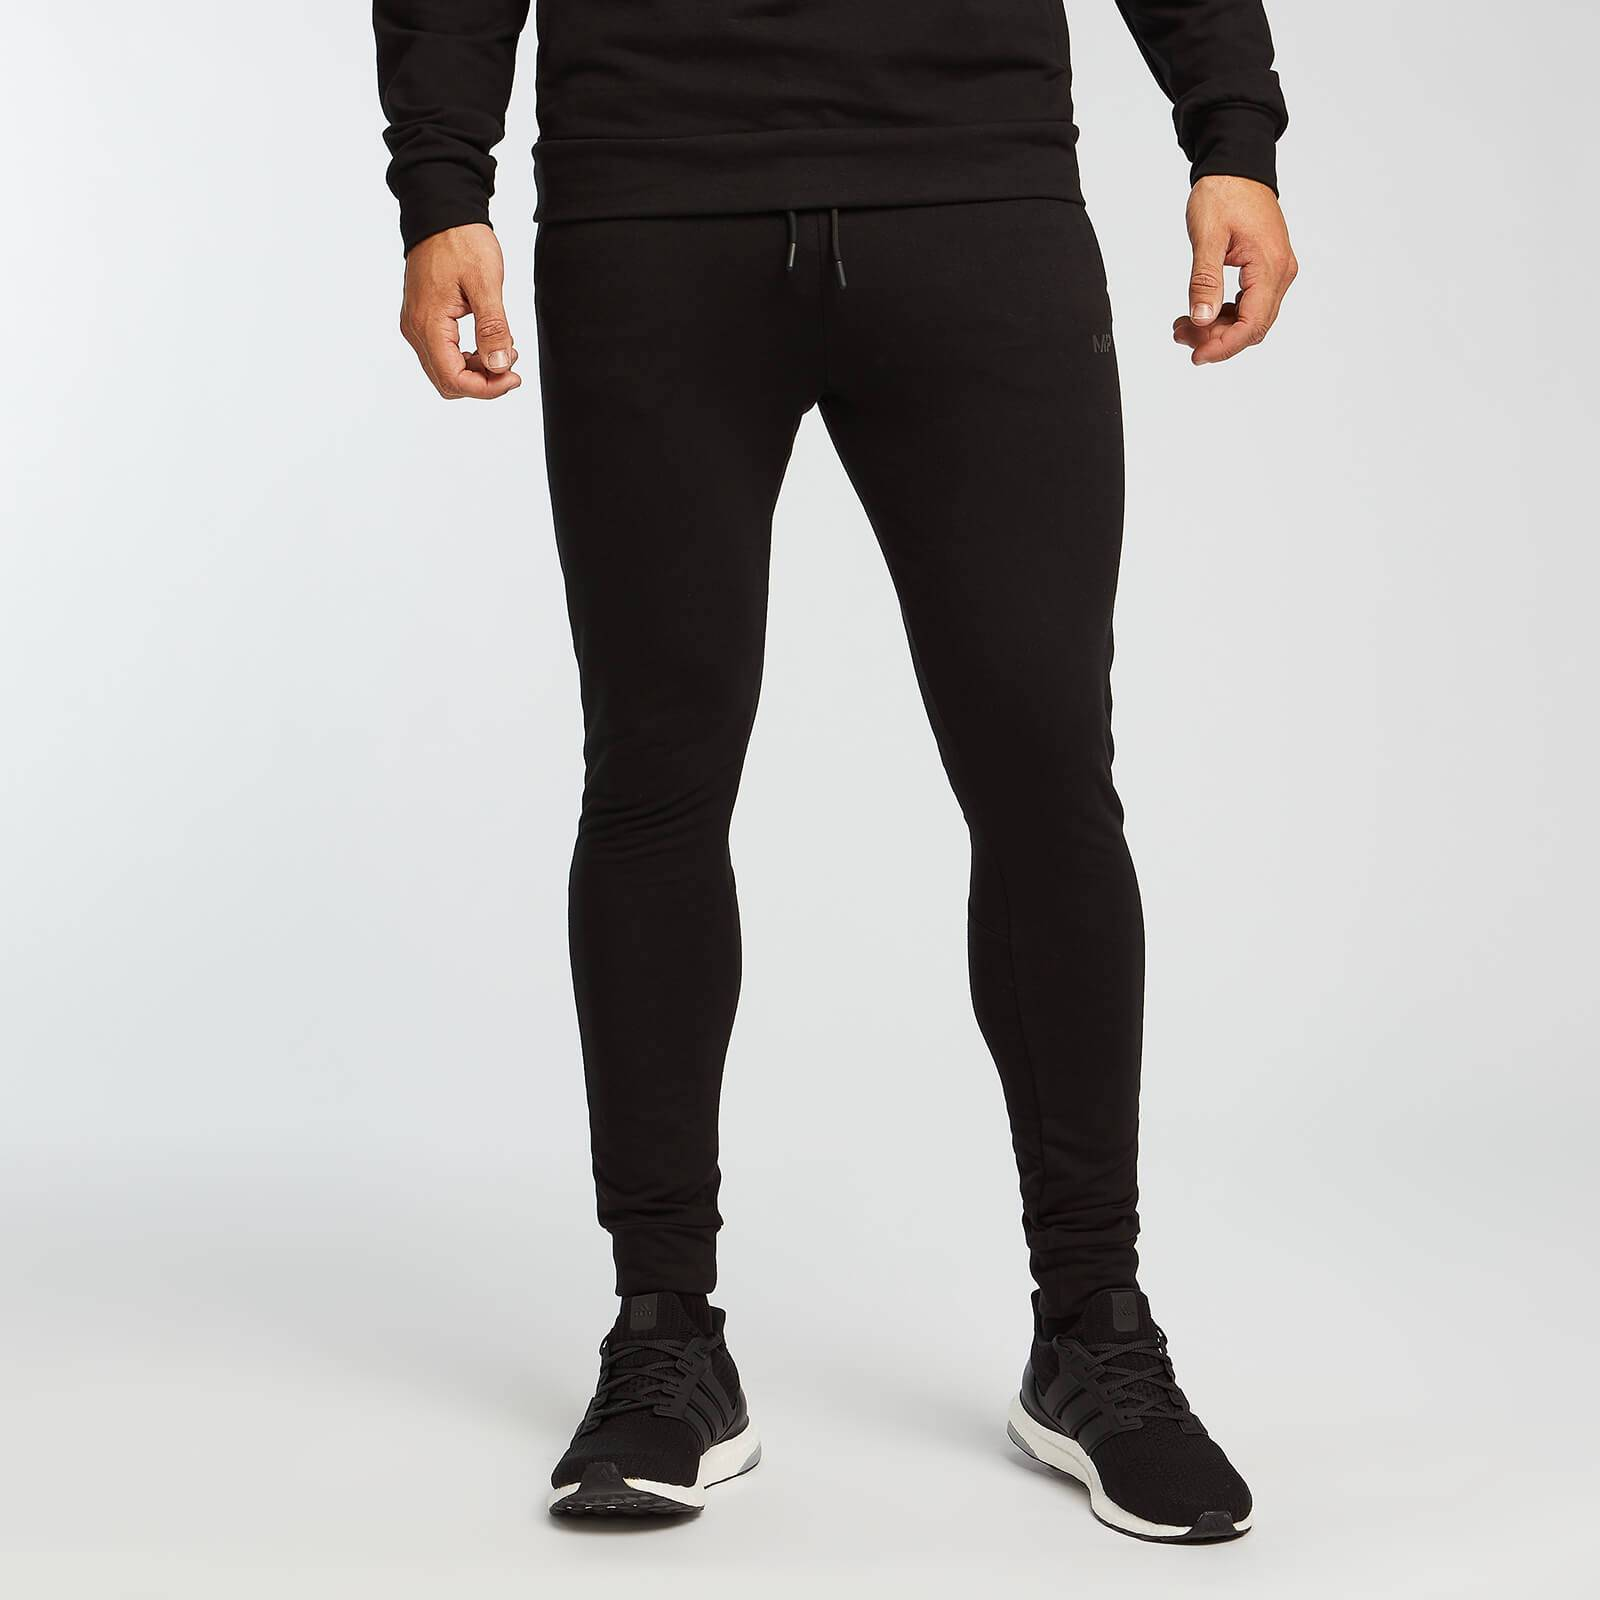 Myprotein Pantaloni da jogging slim fit MP Form da uomo - Neri - M